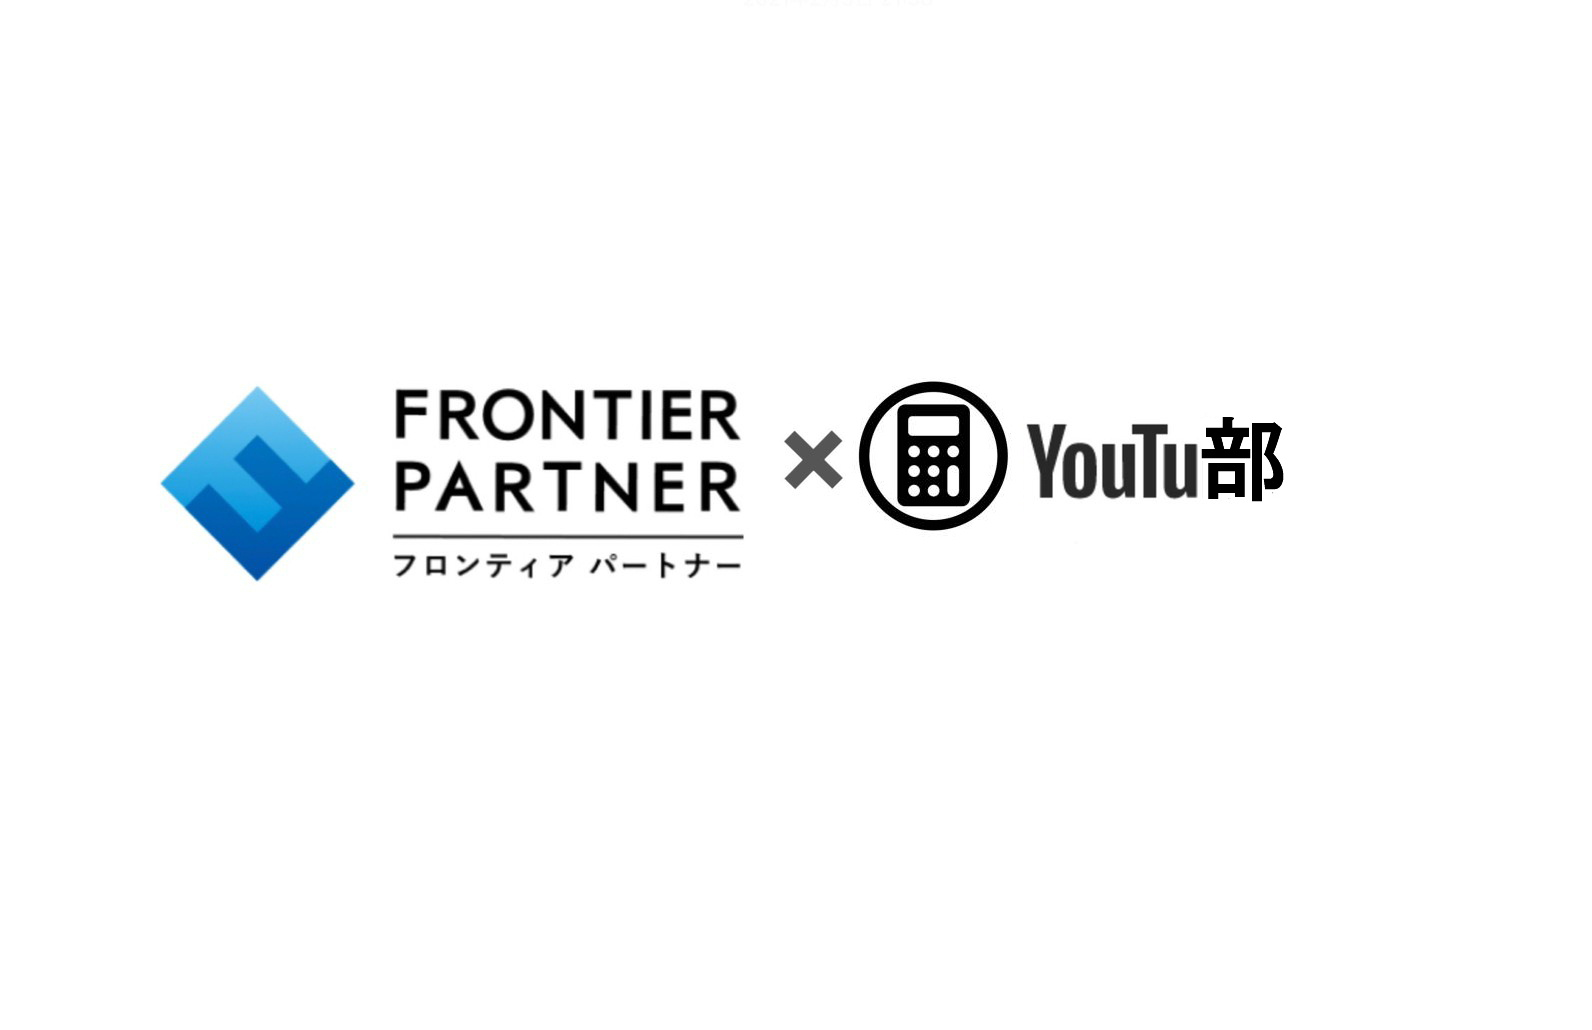 Fpc×YouTu部 記念すべき1回目配信!